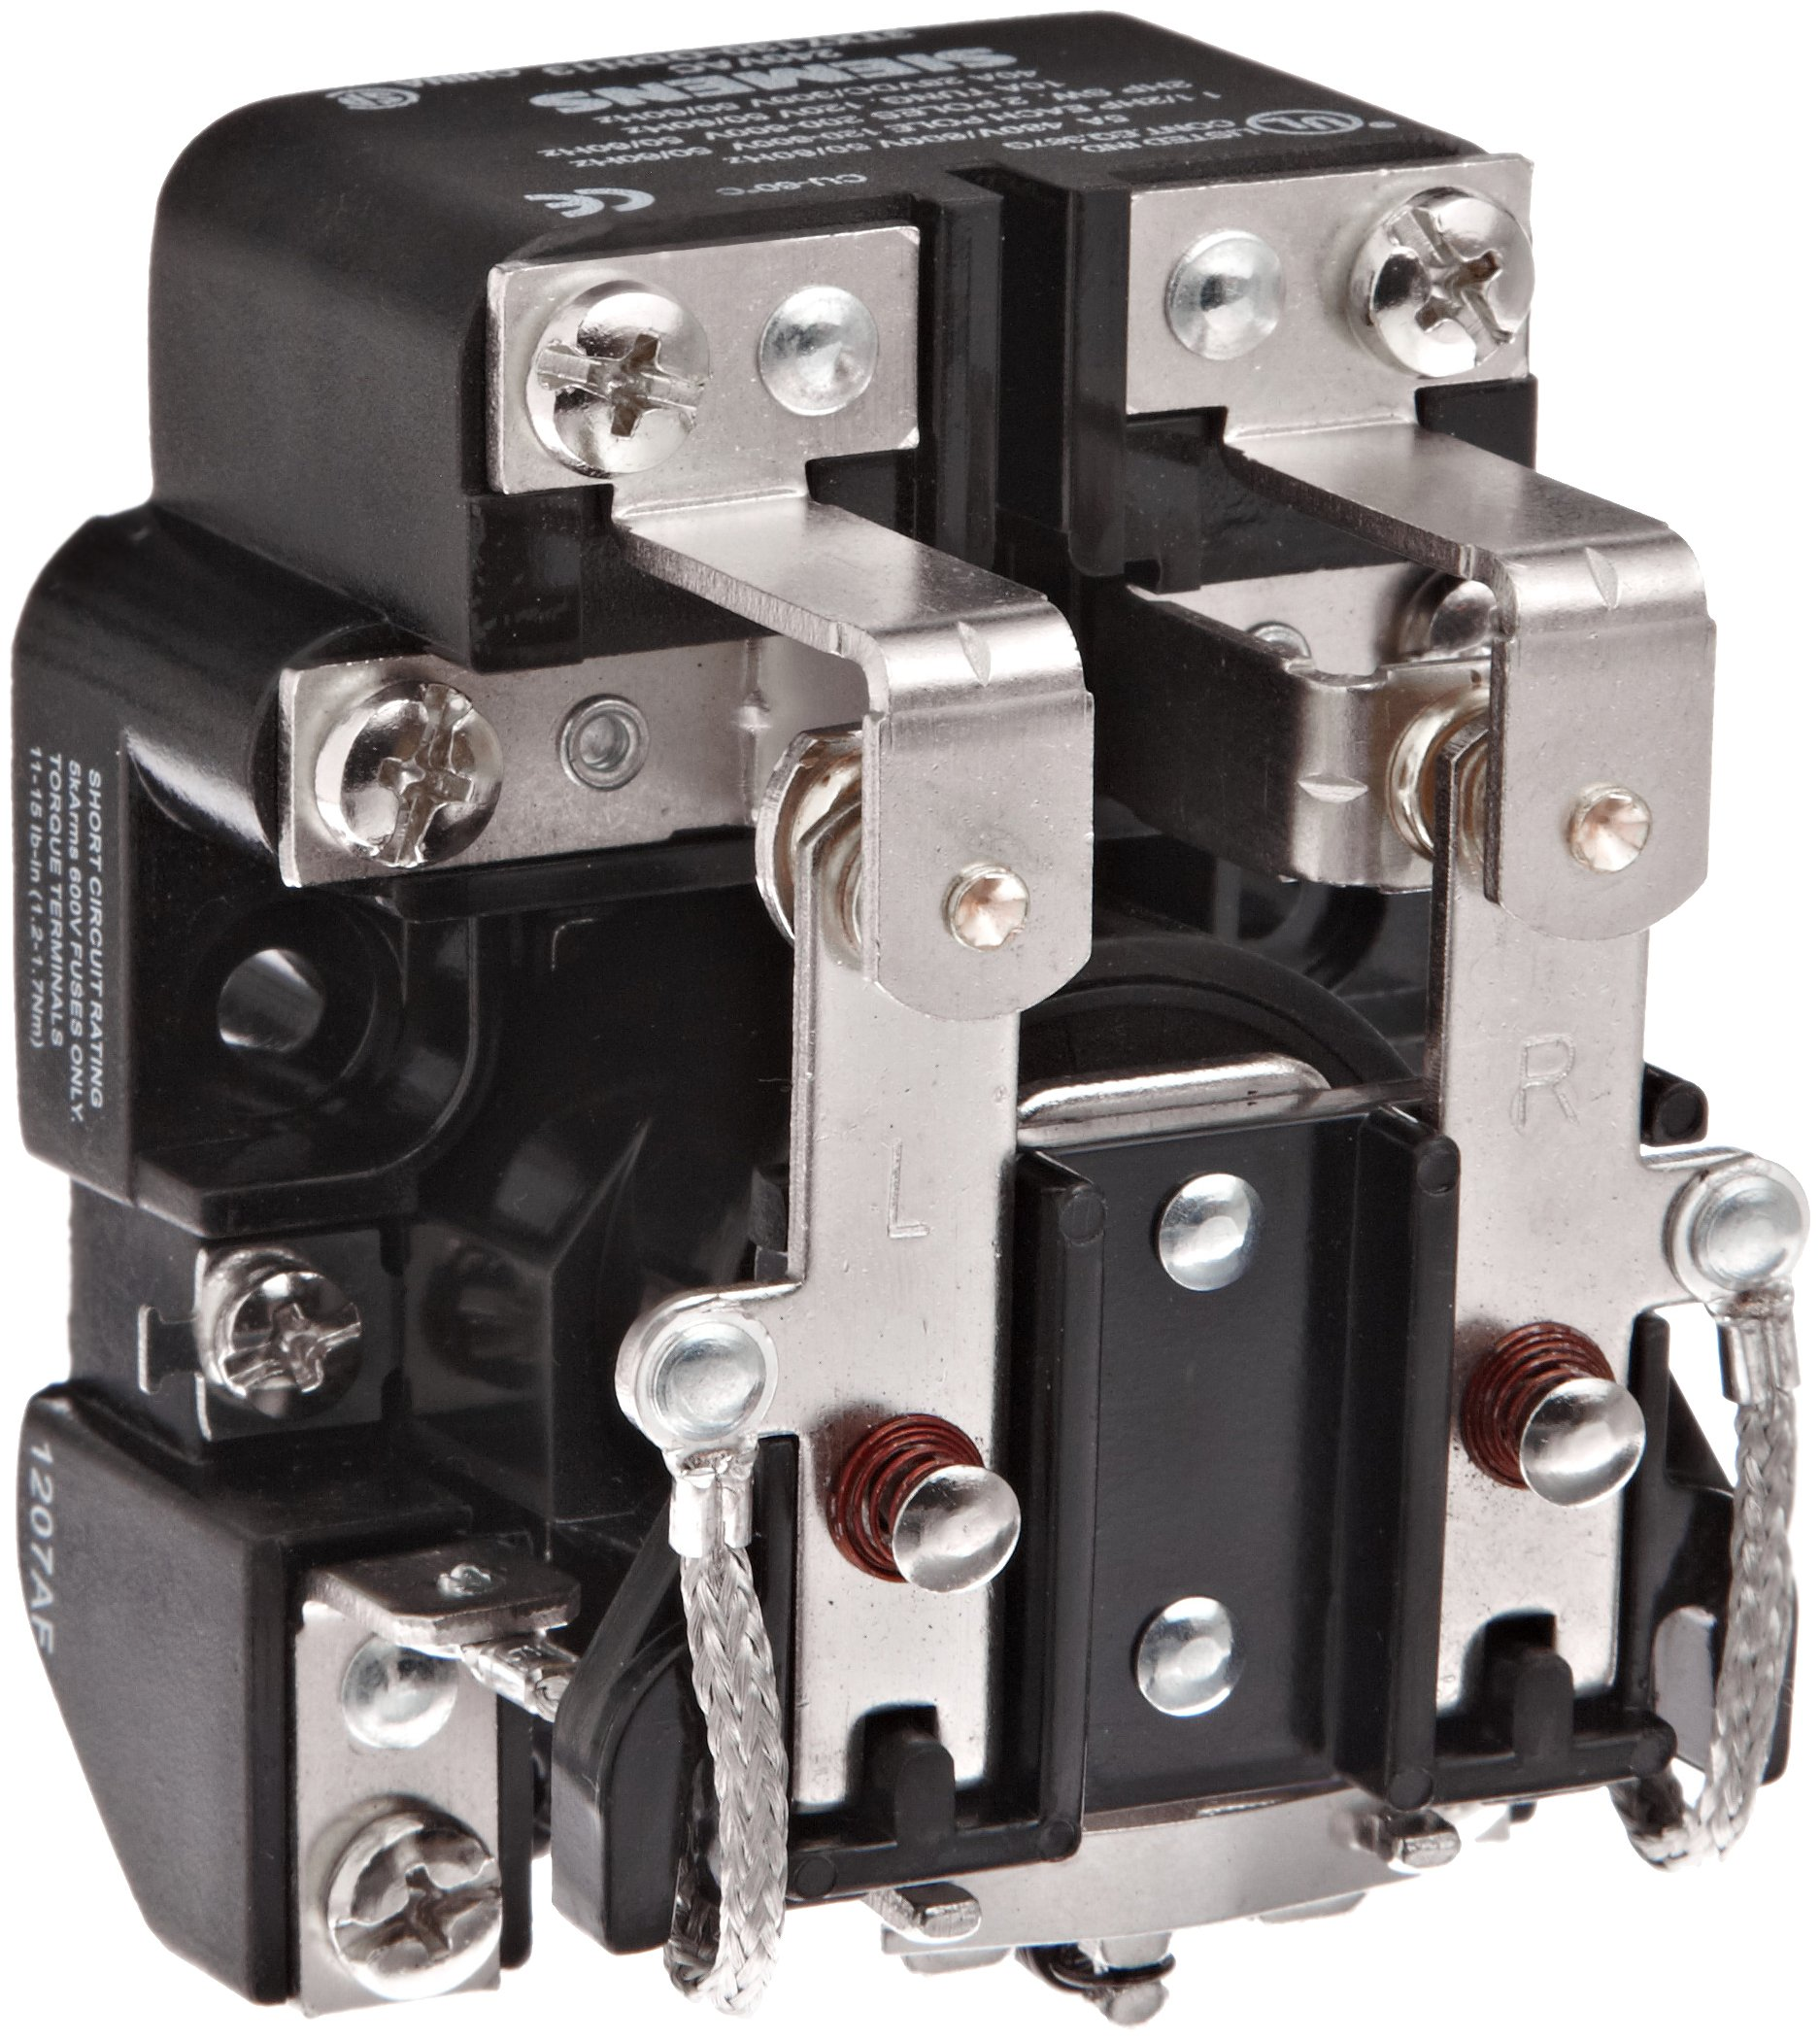 Siemens 3TX7130-0DH13 Basic Plug In Open Power Relay, DPDT Contacts, 40A Contact Rating, 240VAC Coil Voltage